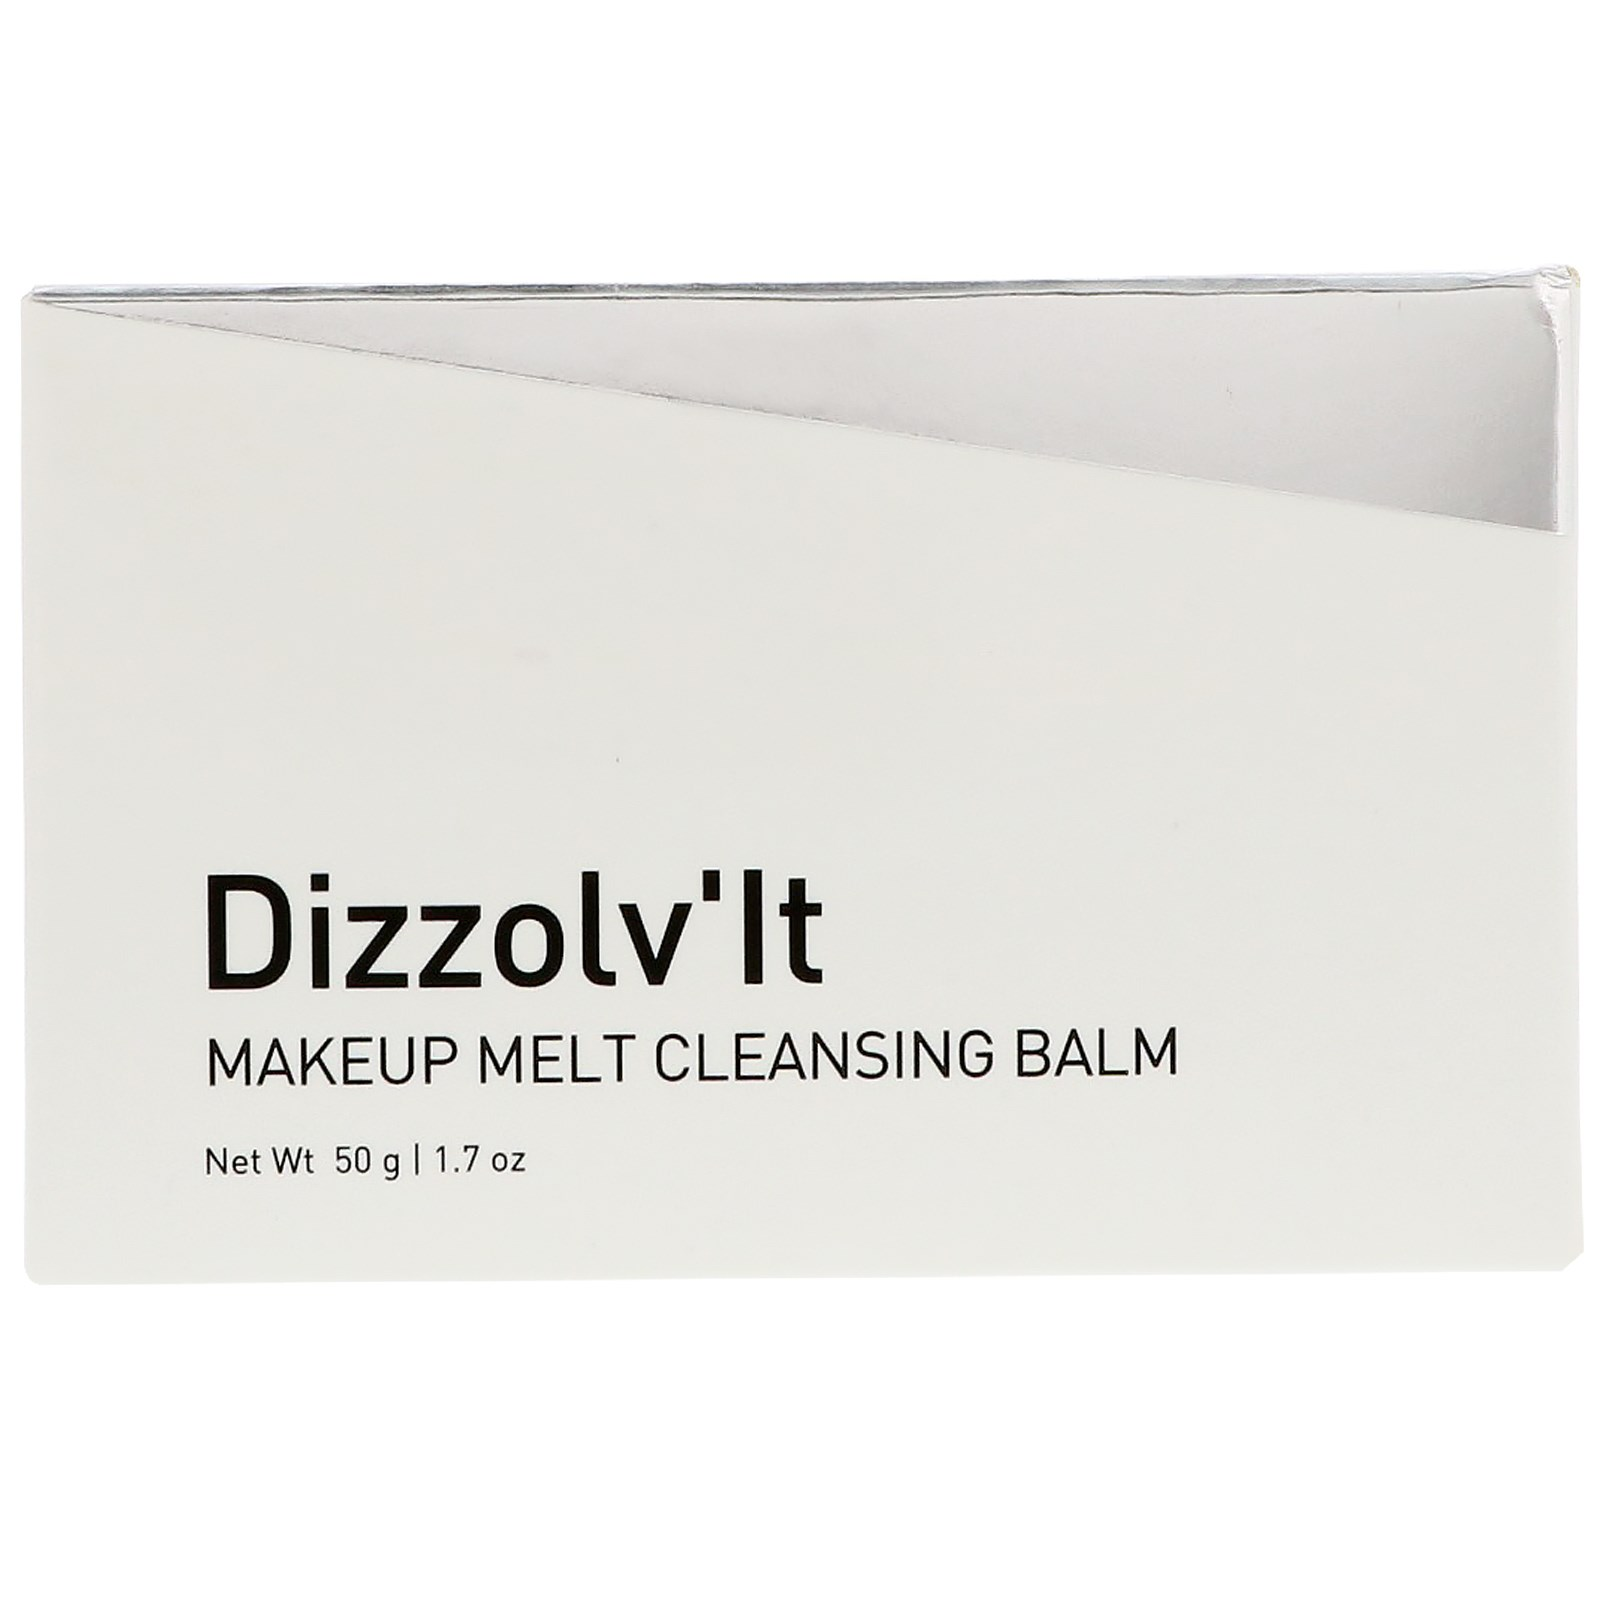 Cailyn - DizzolvIt Makeup Melt Cleansing Balm - 1.7 oz. (pack of 4) MISSAMMY4 in 1 Skin Care Titanium Micro Needle Derma Roller for Wrinkles, Acne Scarsпј€300/720/1200 Needles 0.5+1.5+2.0пј‰